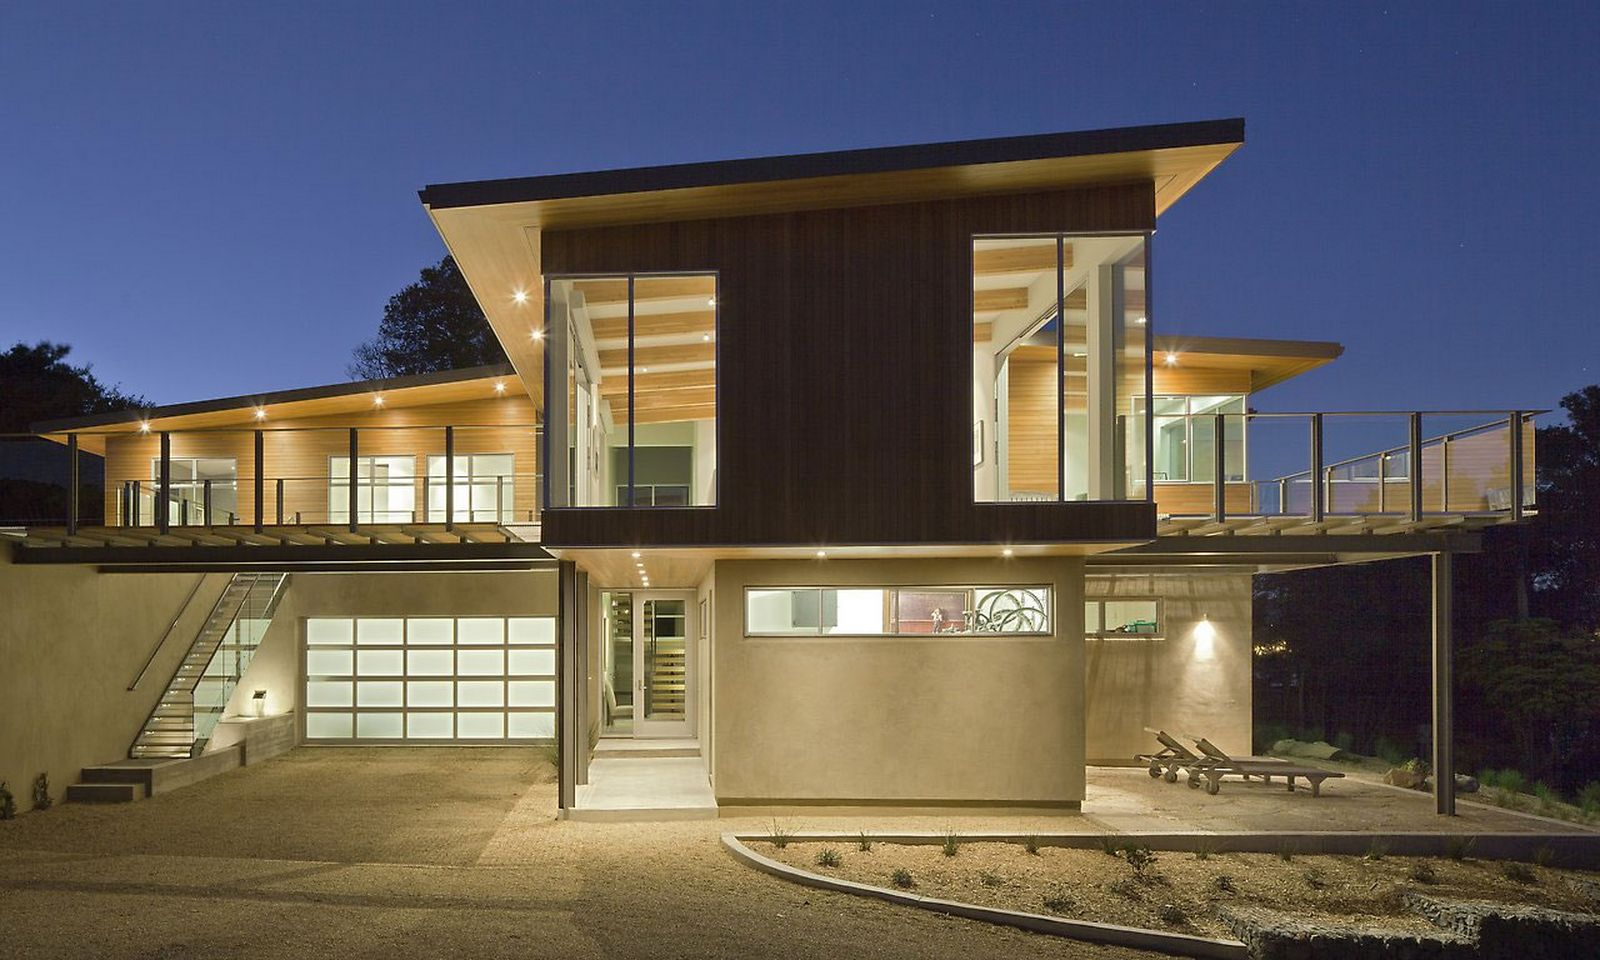 Luxury-Modern-House-Exterior-Design-with-Rest-Area-in-Side-of-The-House-and-with-Beautiful-Interior-White-Lighting